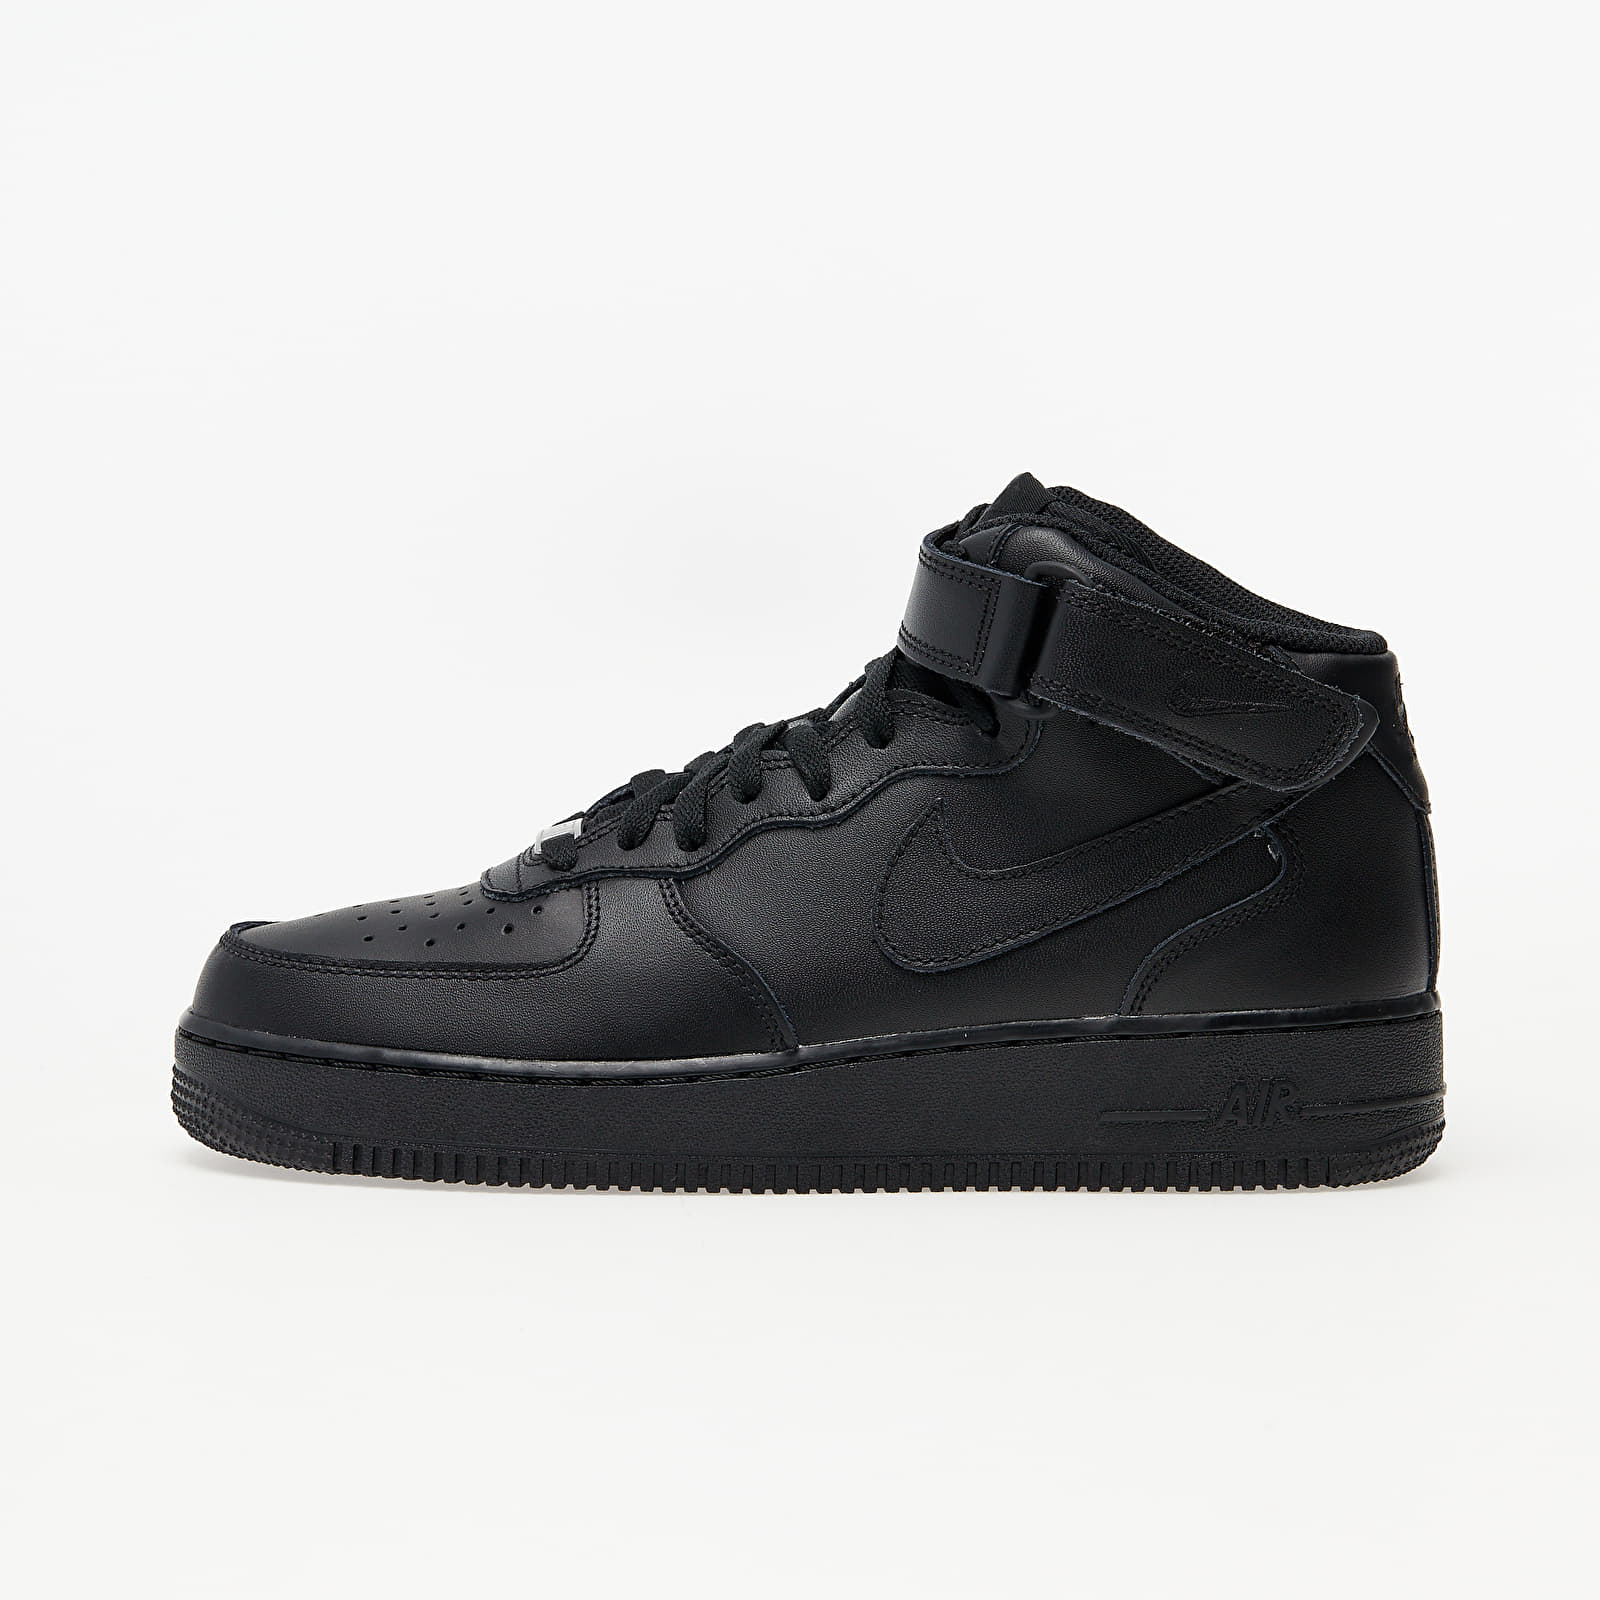 Muške tenisice do gležnja Nike Air Force 1 Mid '07 Black/ Black-Black